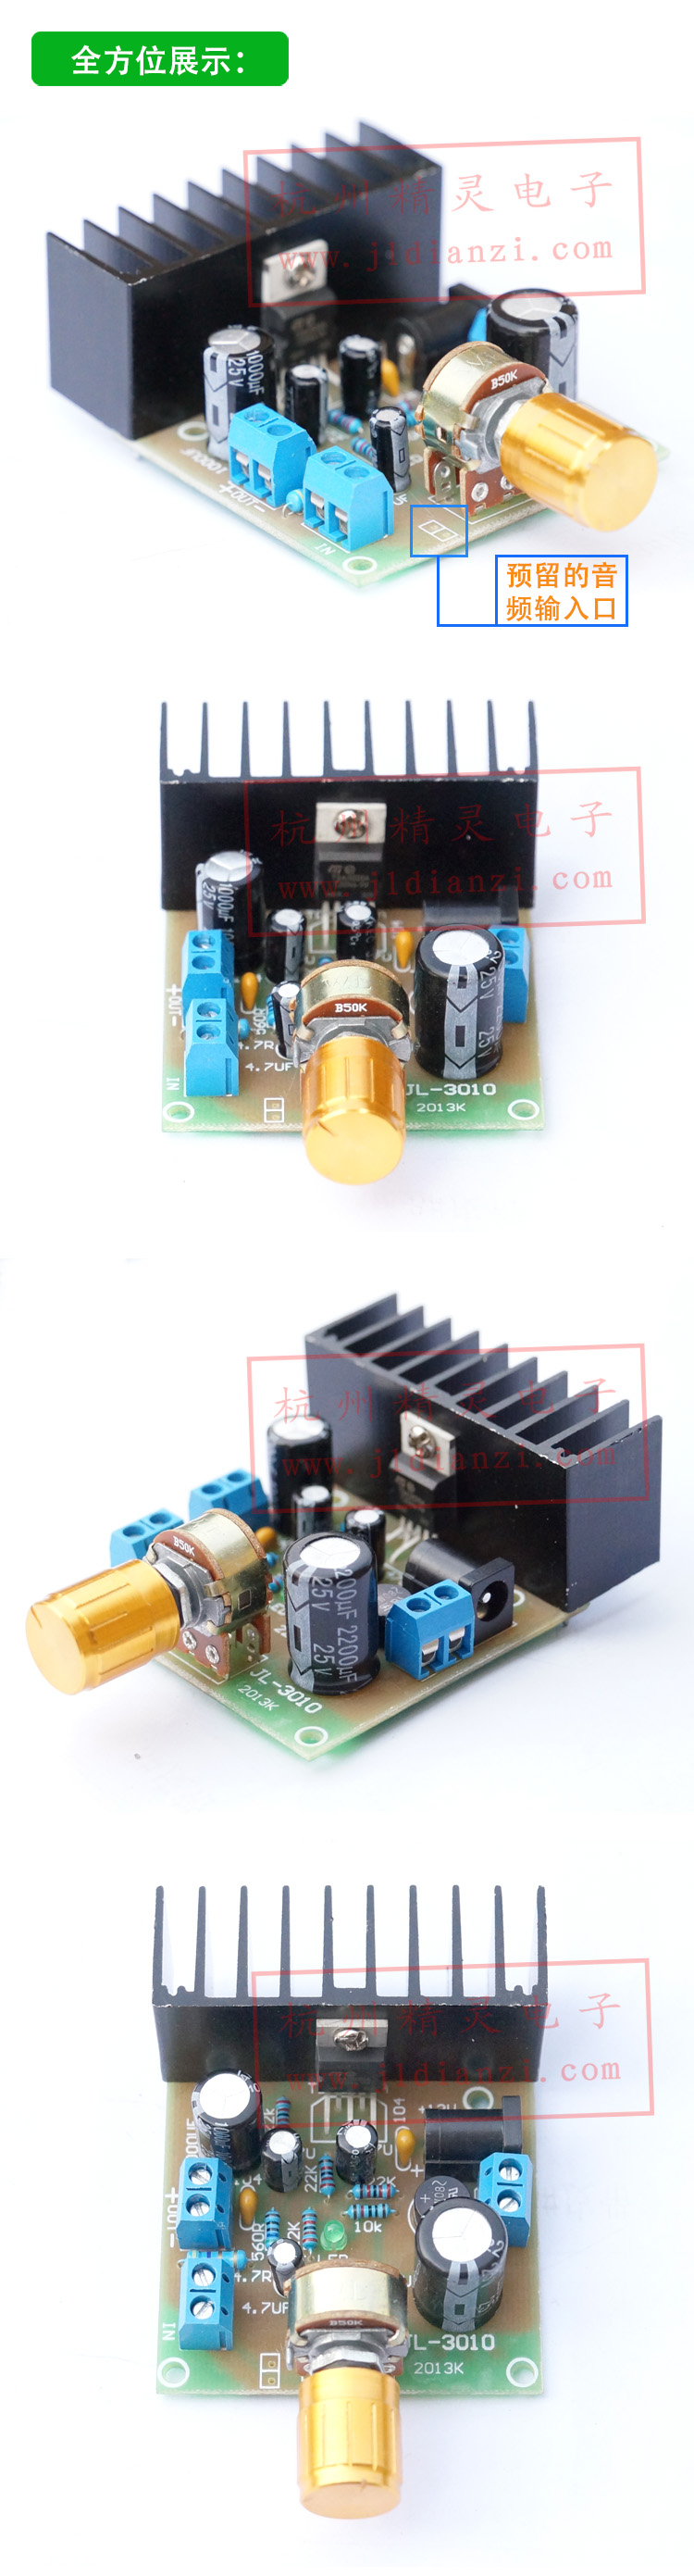 Ac 12v Dc Single Channel Tda2030a Power Amplifier Board Audio Spacer Circuit Support Buy Push Pcb Spacerpcb Driver